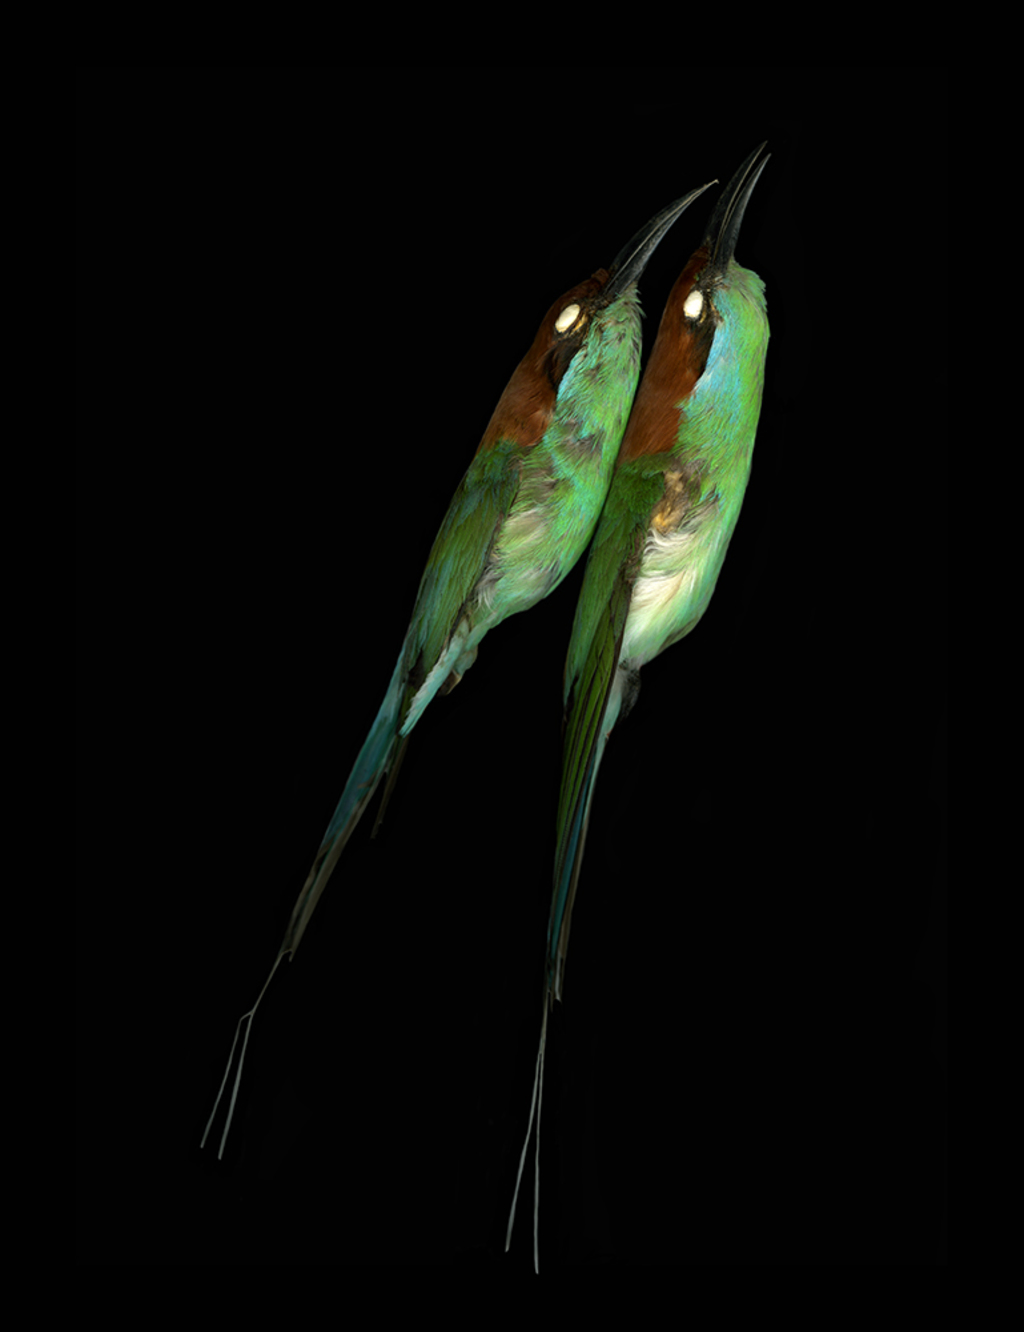 Merops viridis, Blue-throated bee-eater, North Carolina Museum of Natural Sciences, 2007